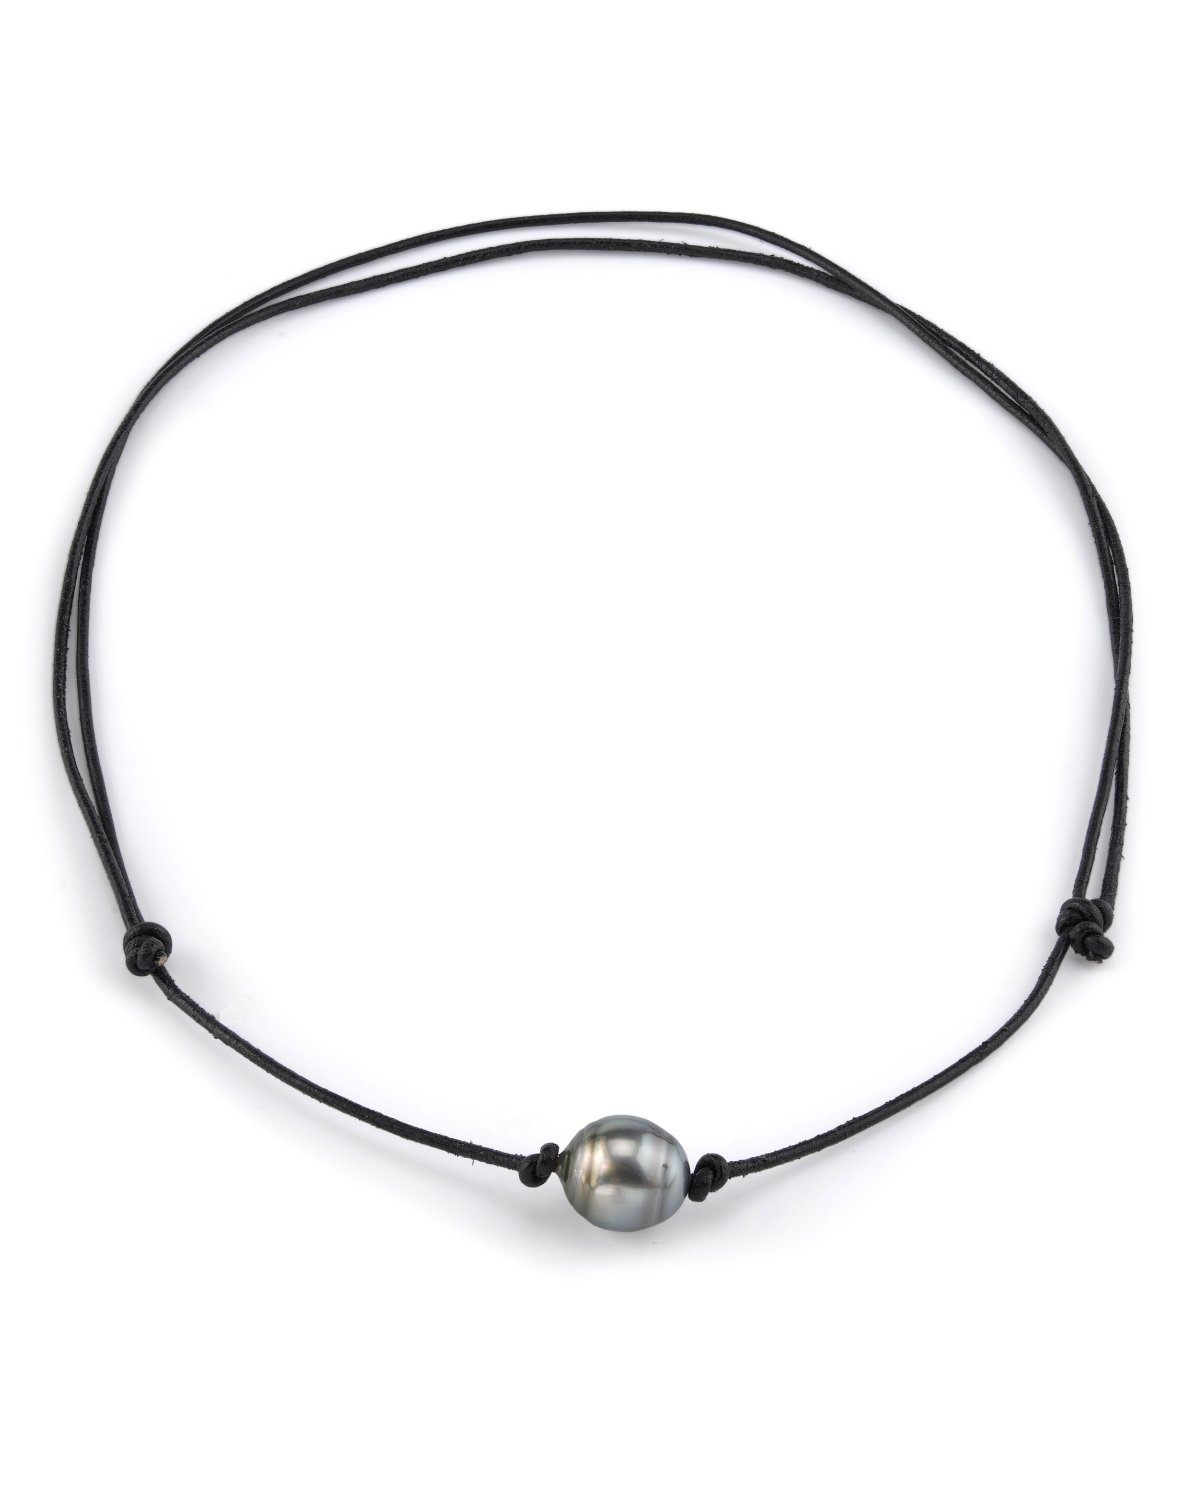 10-11mm Tahitian Baroque Cultured Pearl Leather Adjustable Necklace